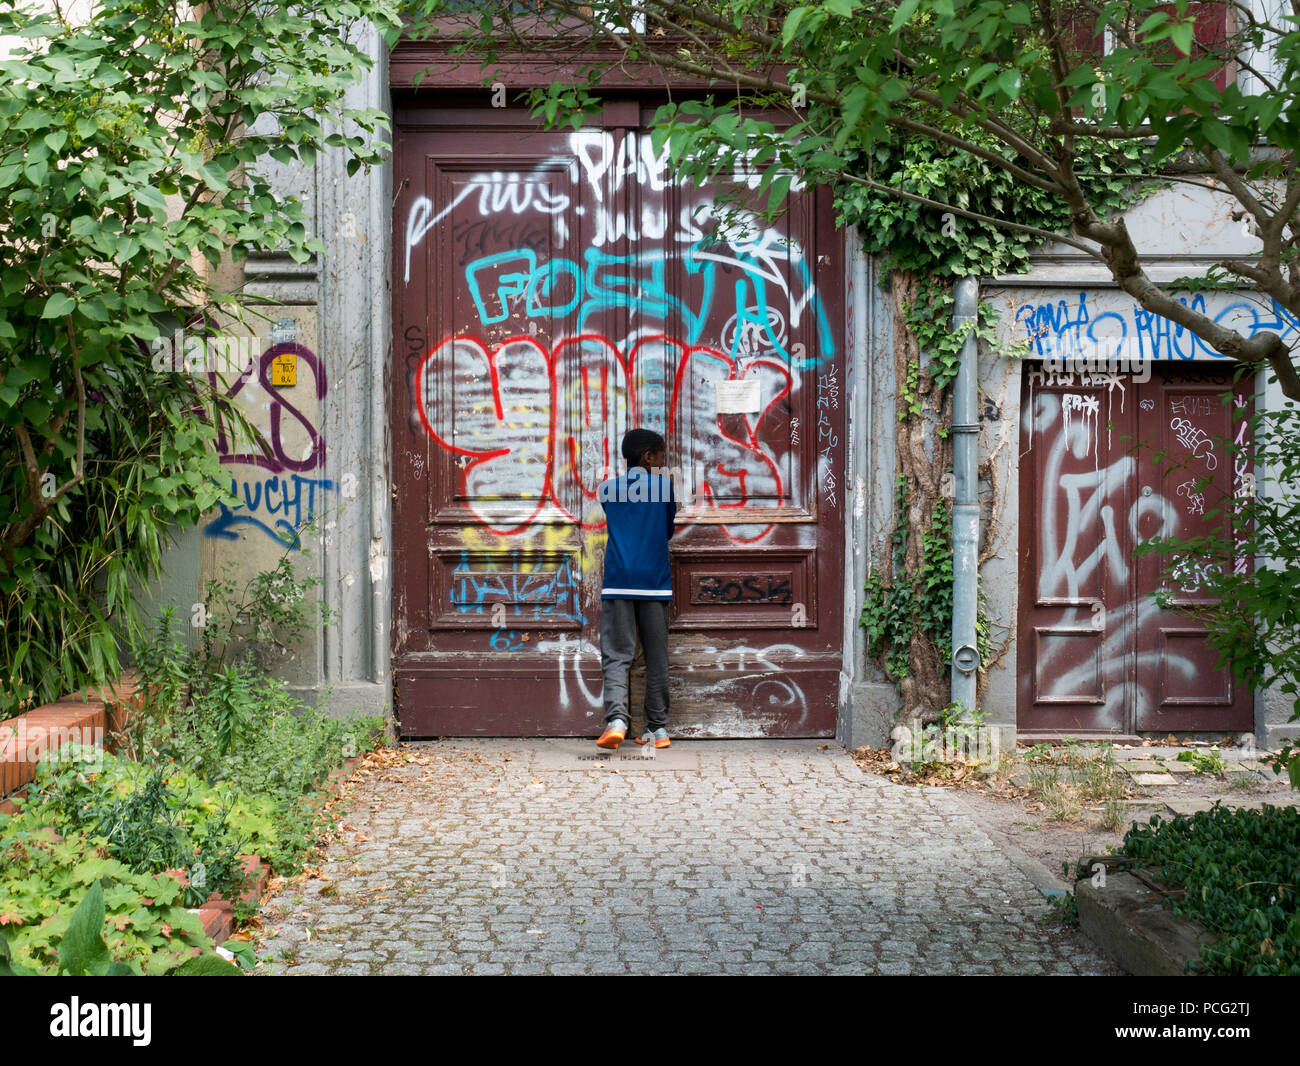 35fe6fe6c A block of flats near former water canal Luisenstadt which was filled up  and later the wall was built on it.Berlin wall was built by Soldiers in ...